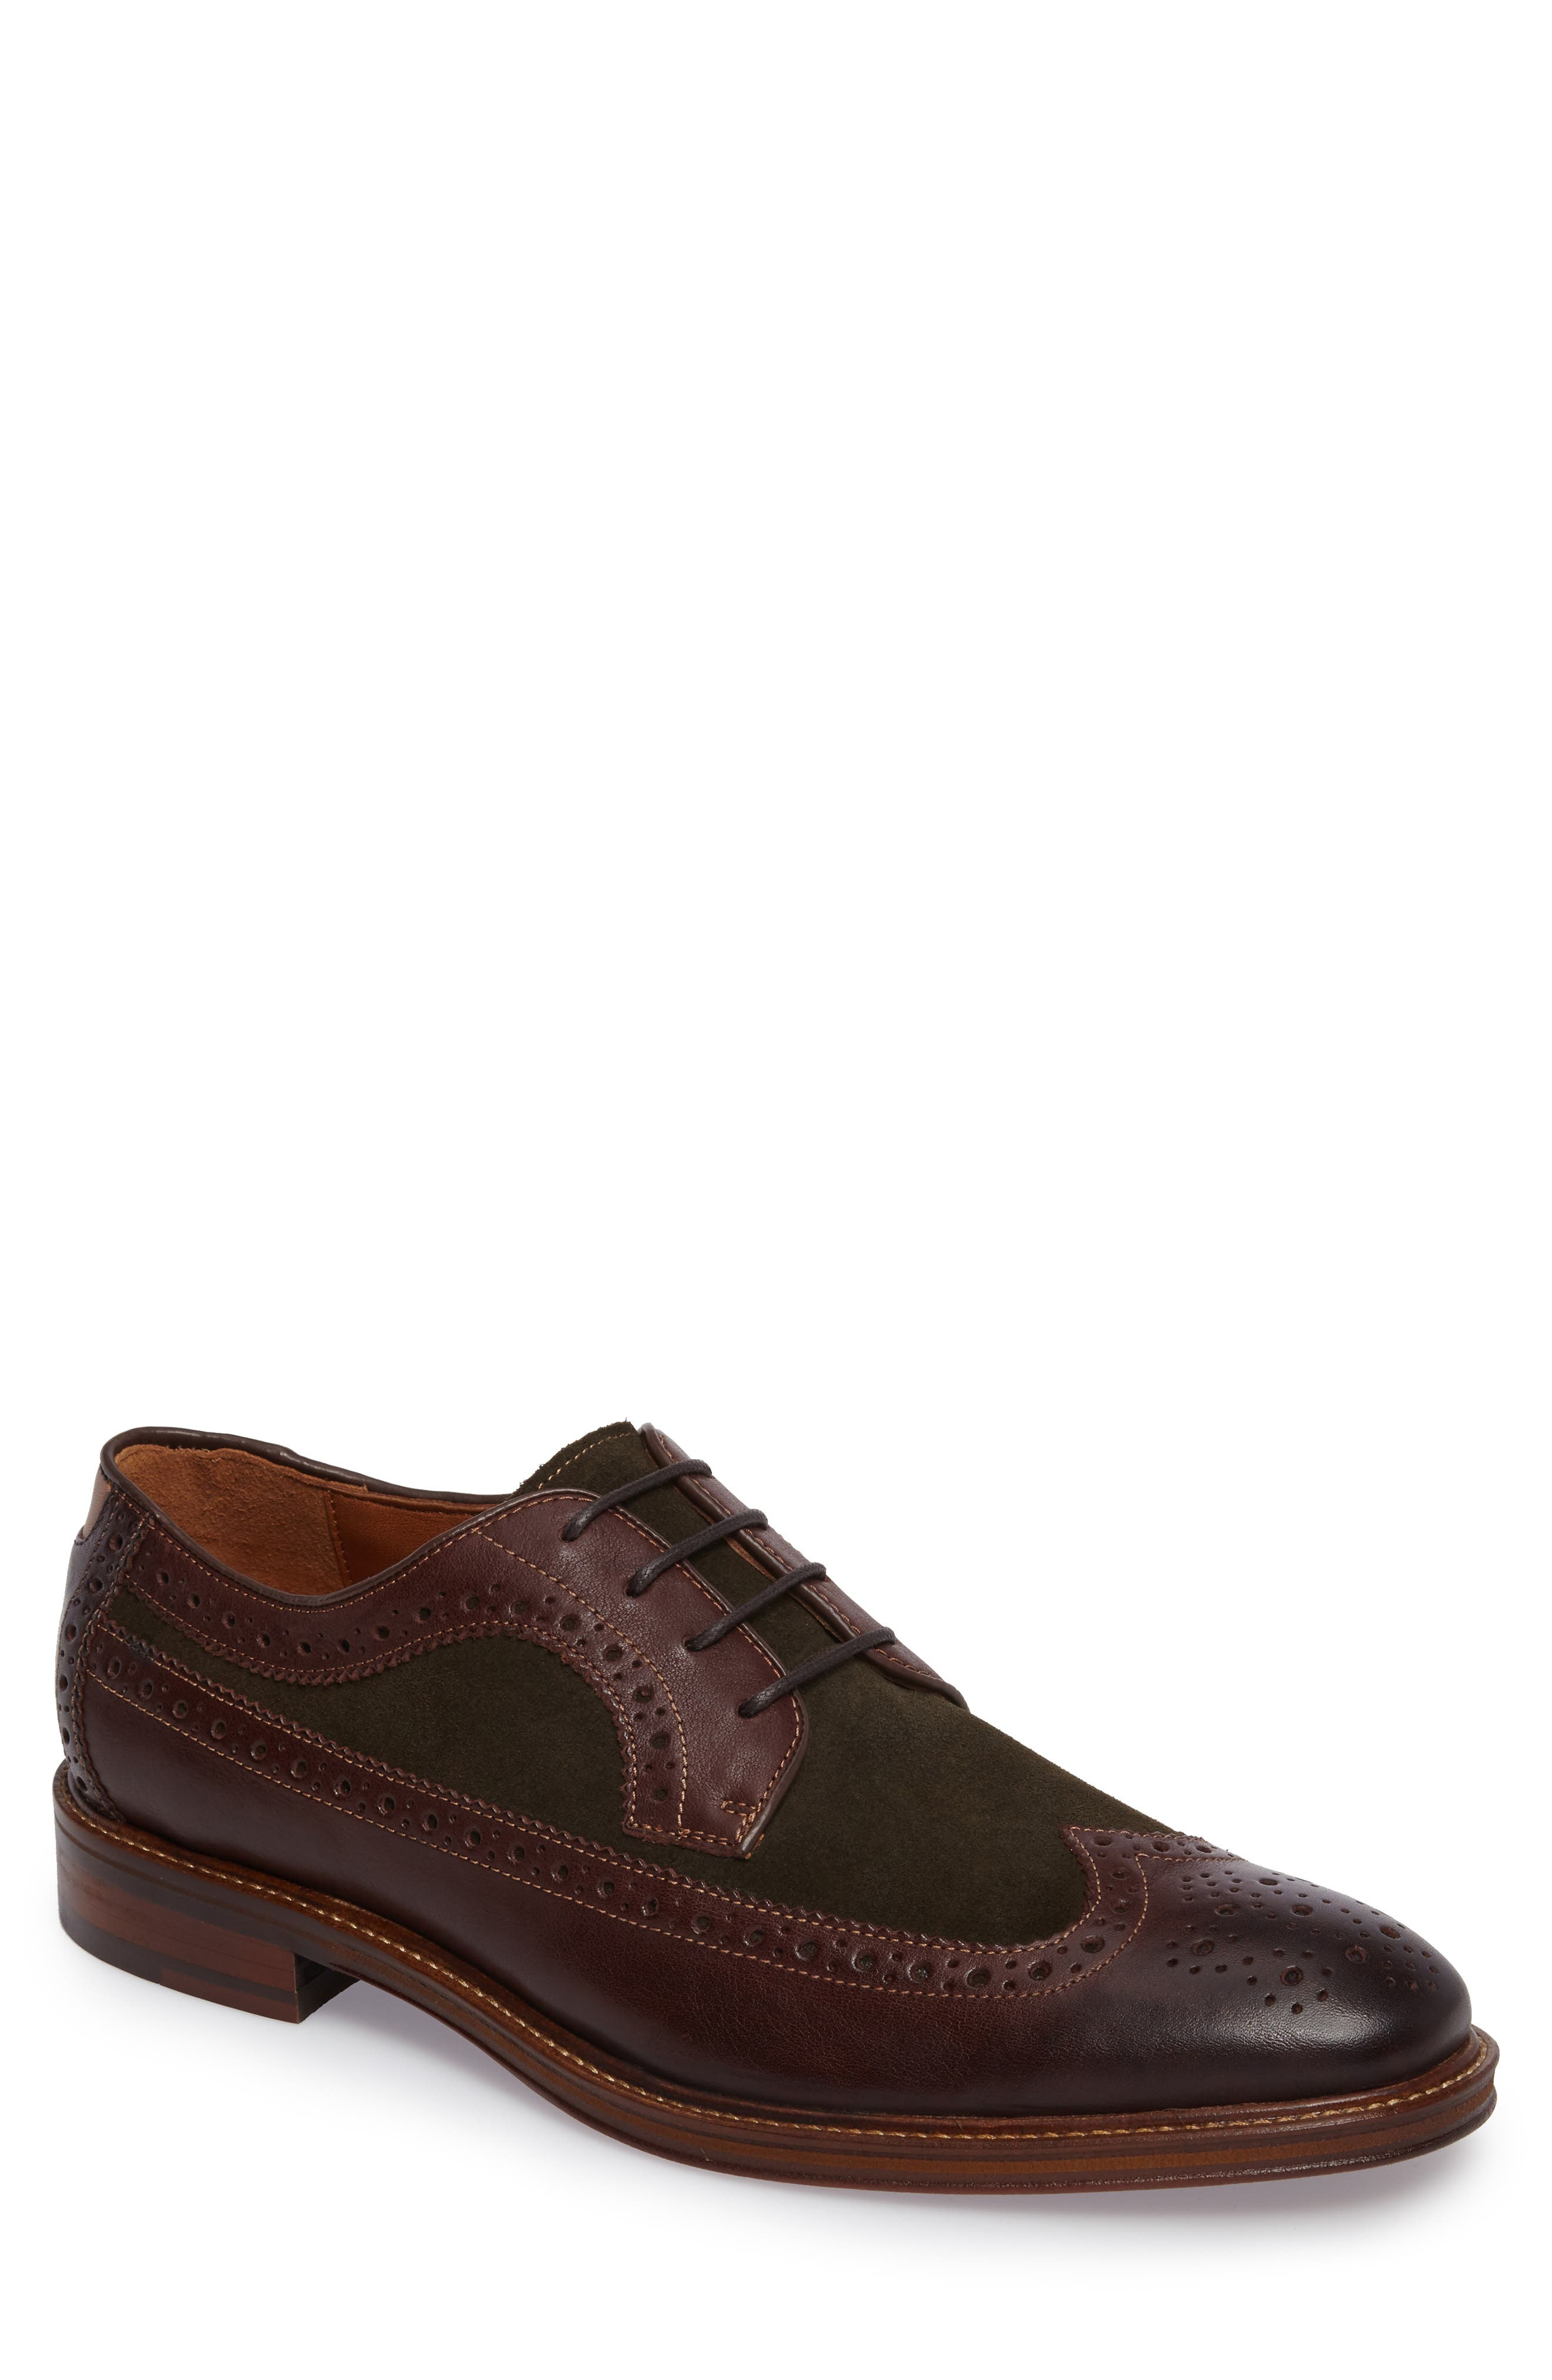 JOHNSTON & MURPHY Warner Spectator Shoe